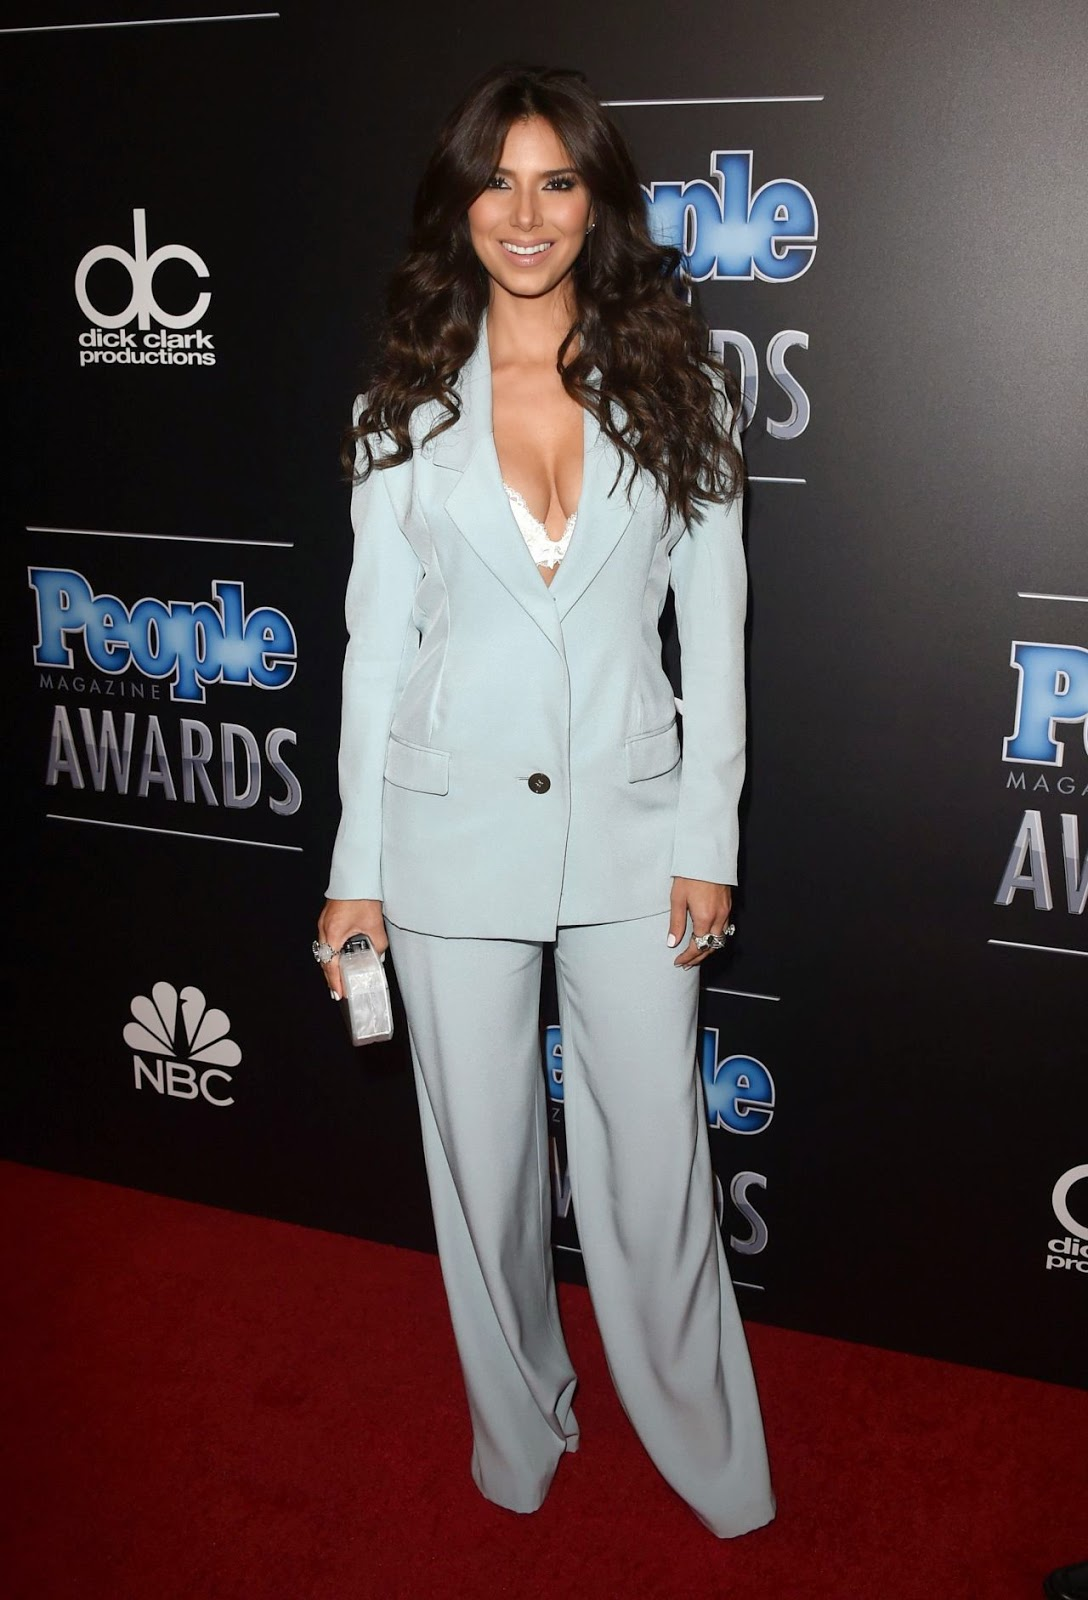 Roselyn Sanchez Reveals Lace Bra In A Pant Suit At The